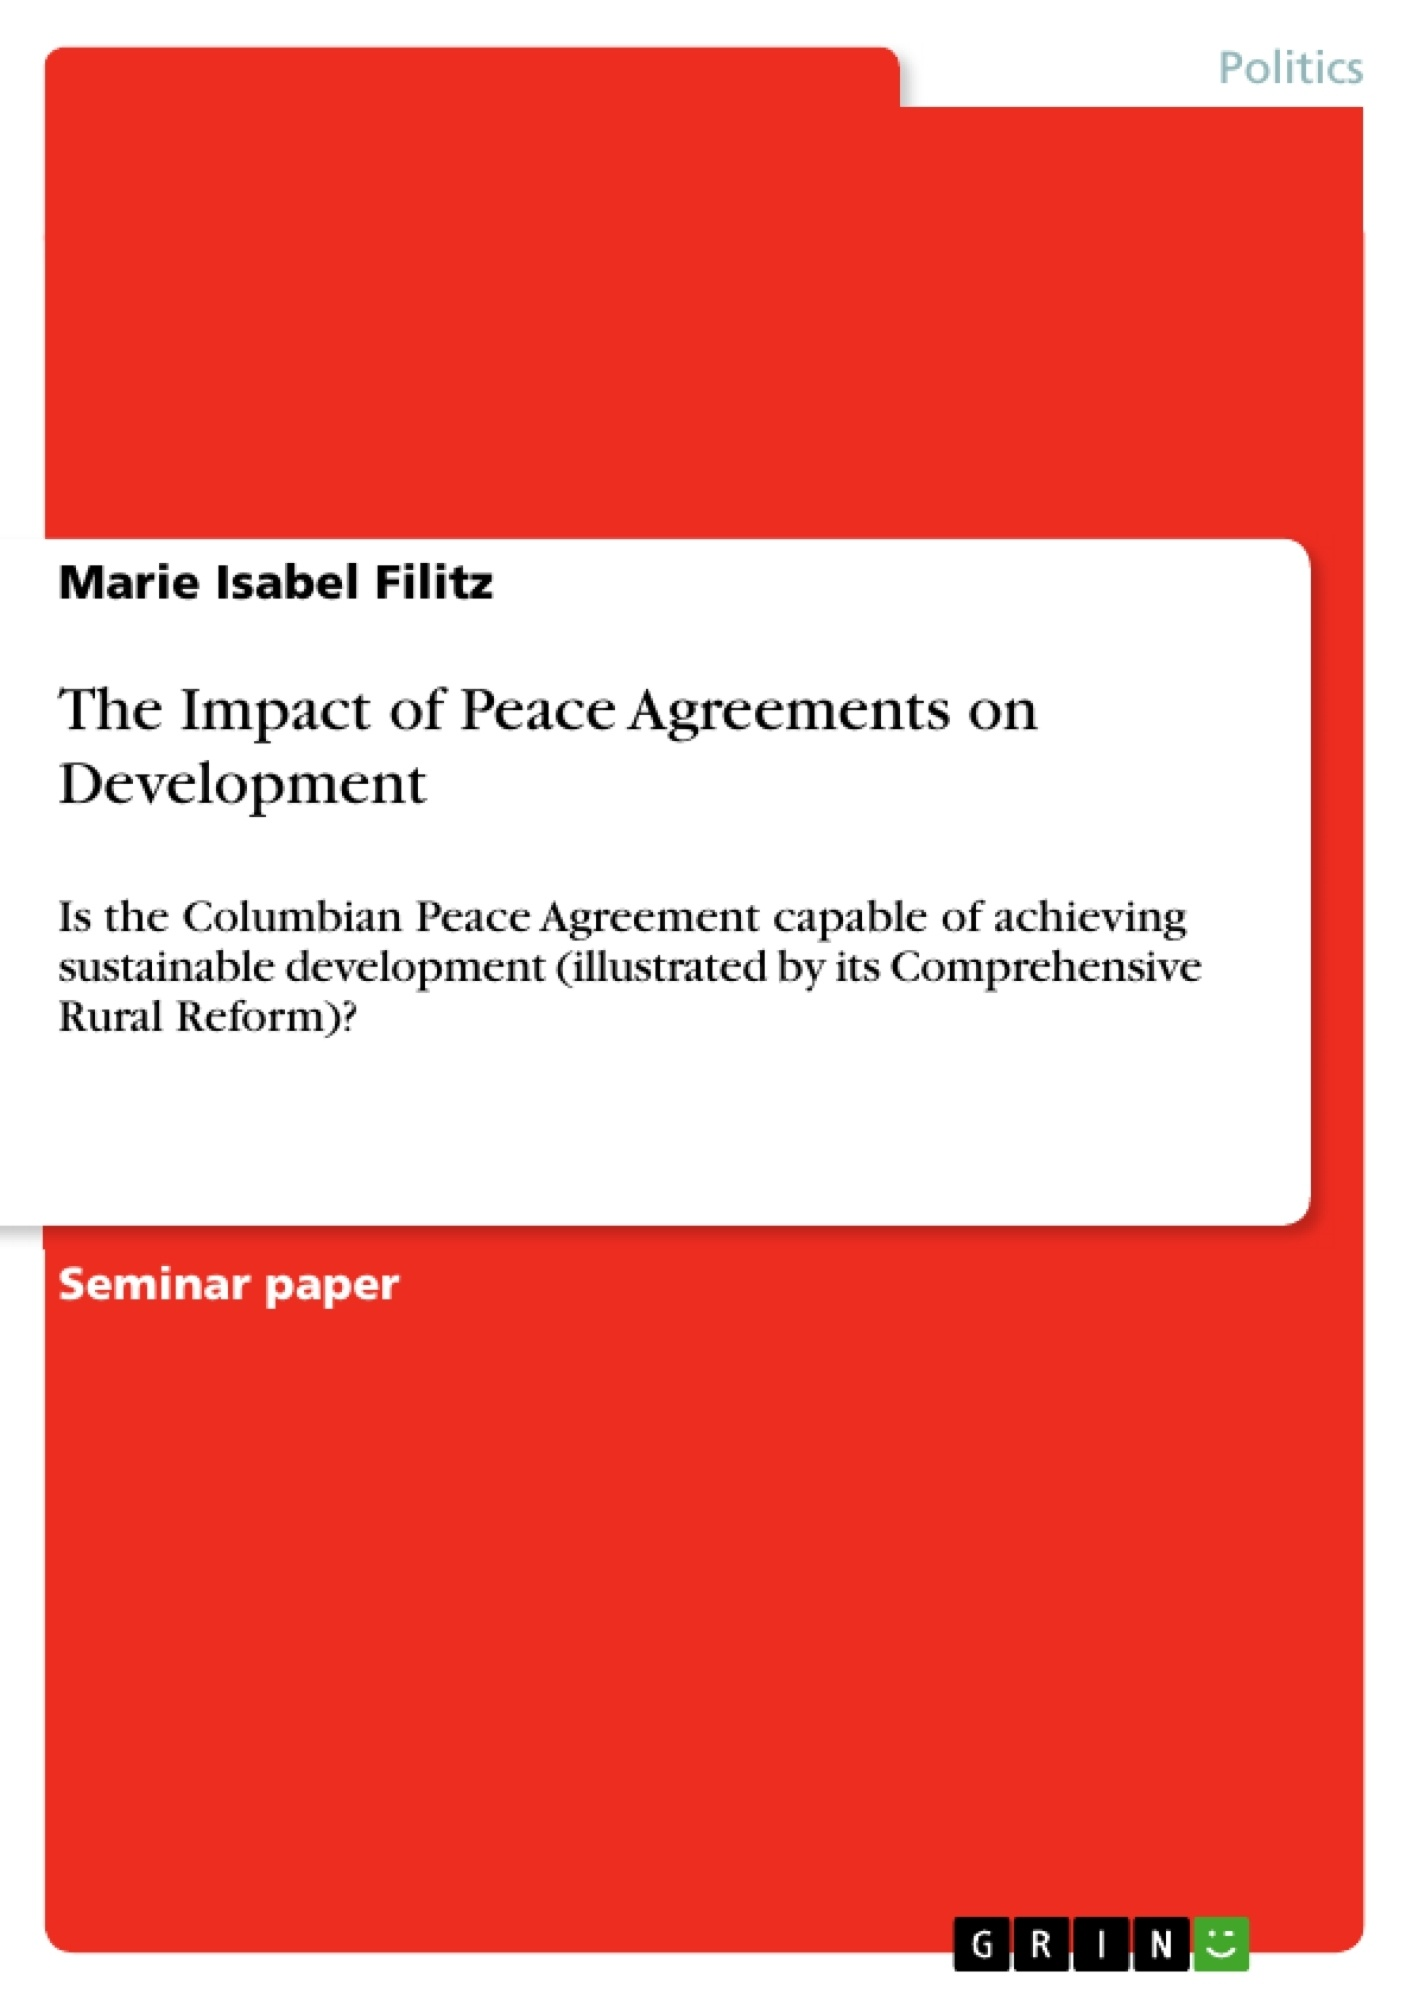 Title: The Impact of Peace Agreements on Development